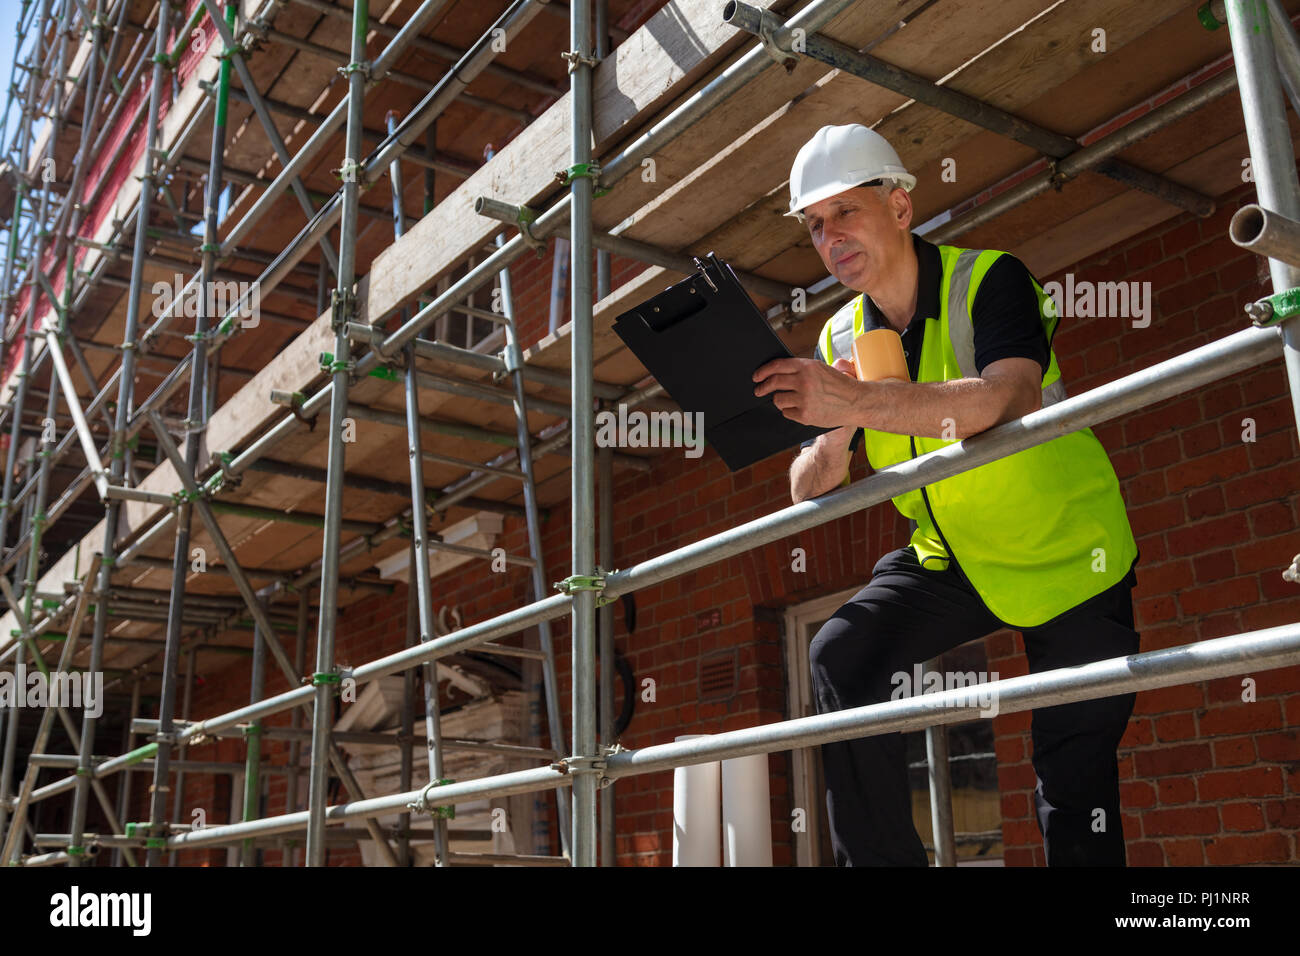 Male builder foreman, construction worker or architect on site holding a clipboard and drinking a mug of coffee or tea - Stock Image